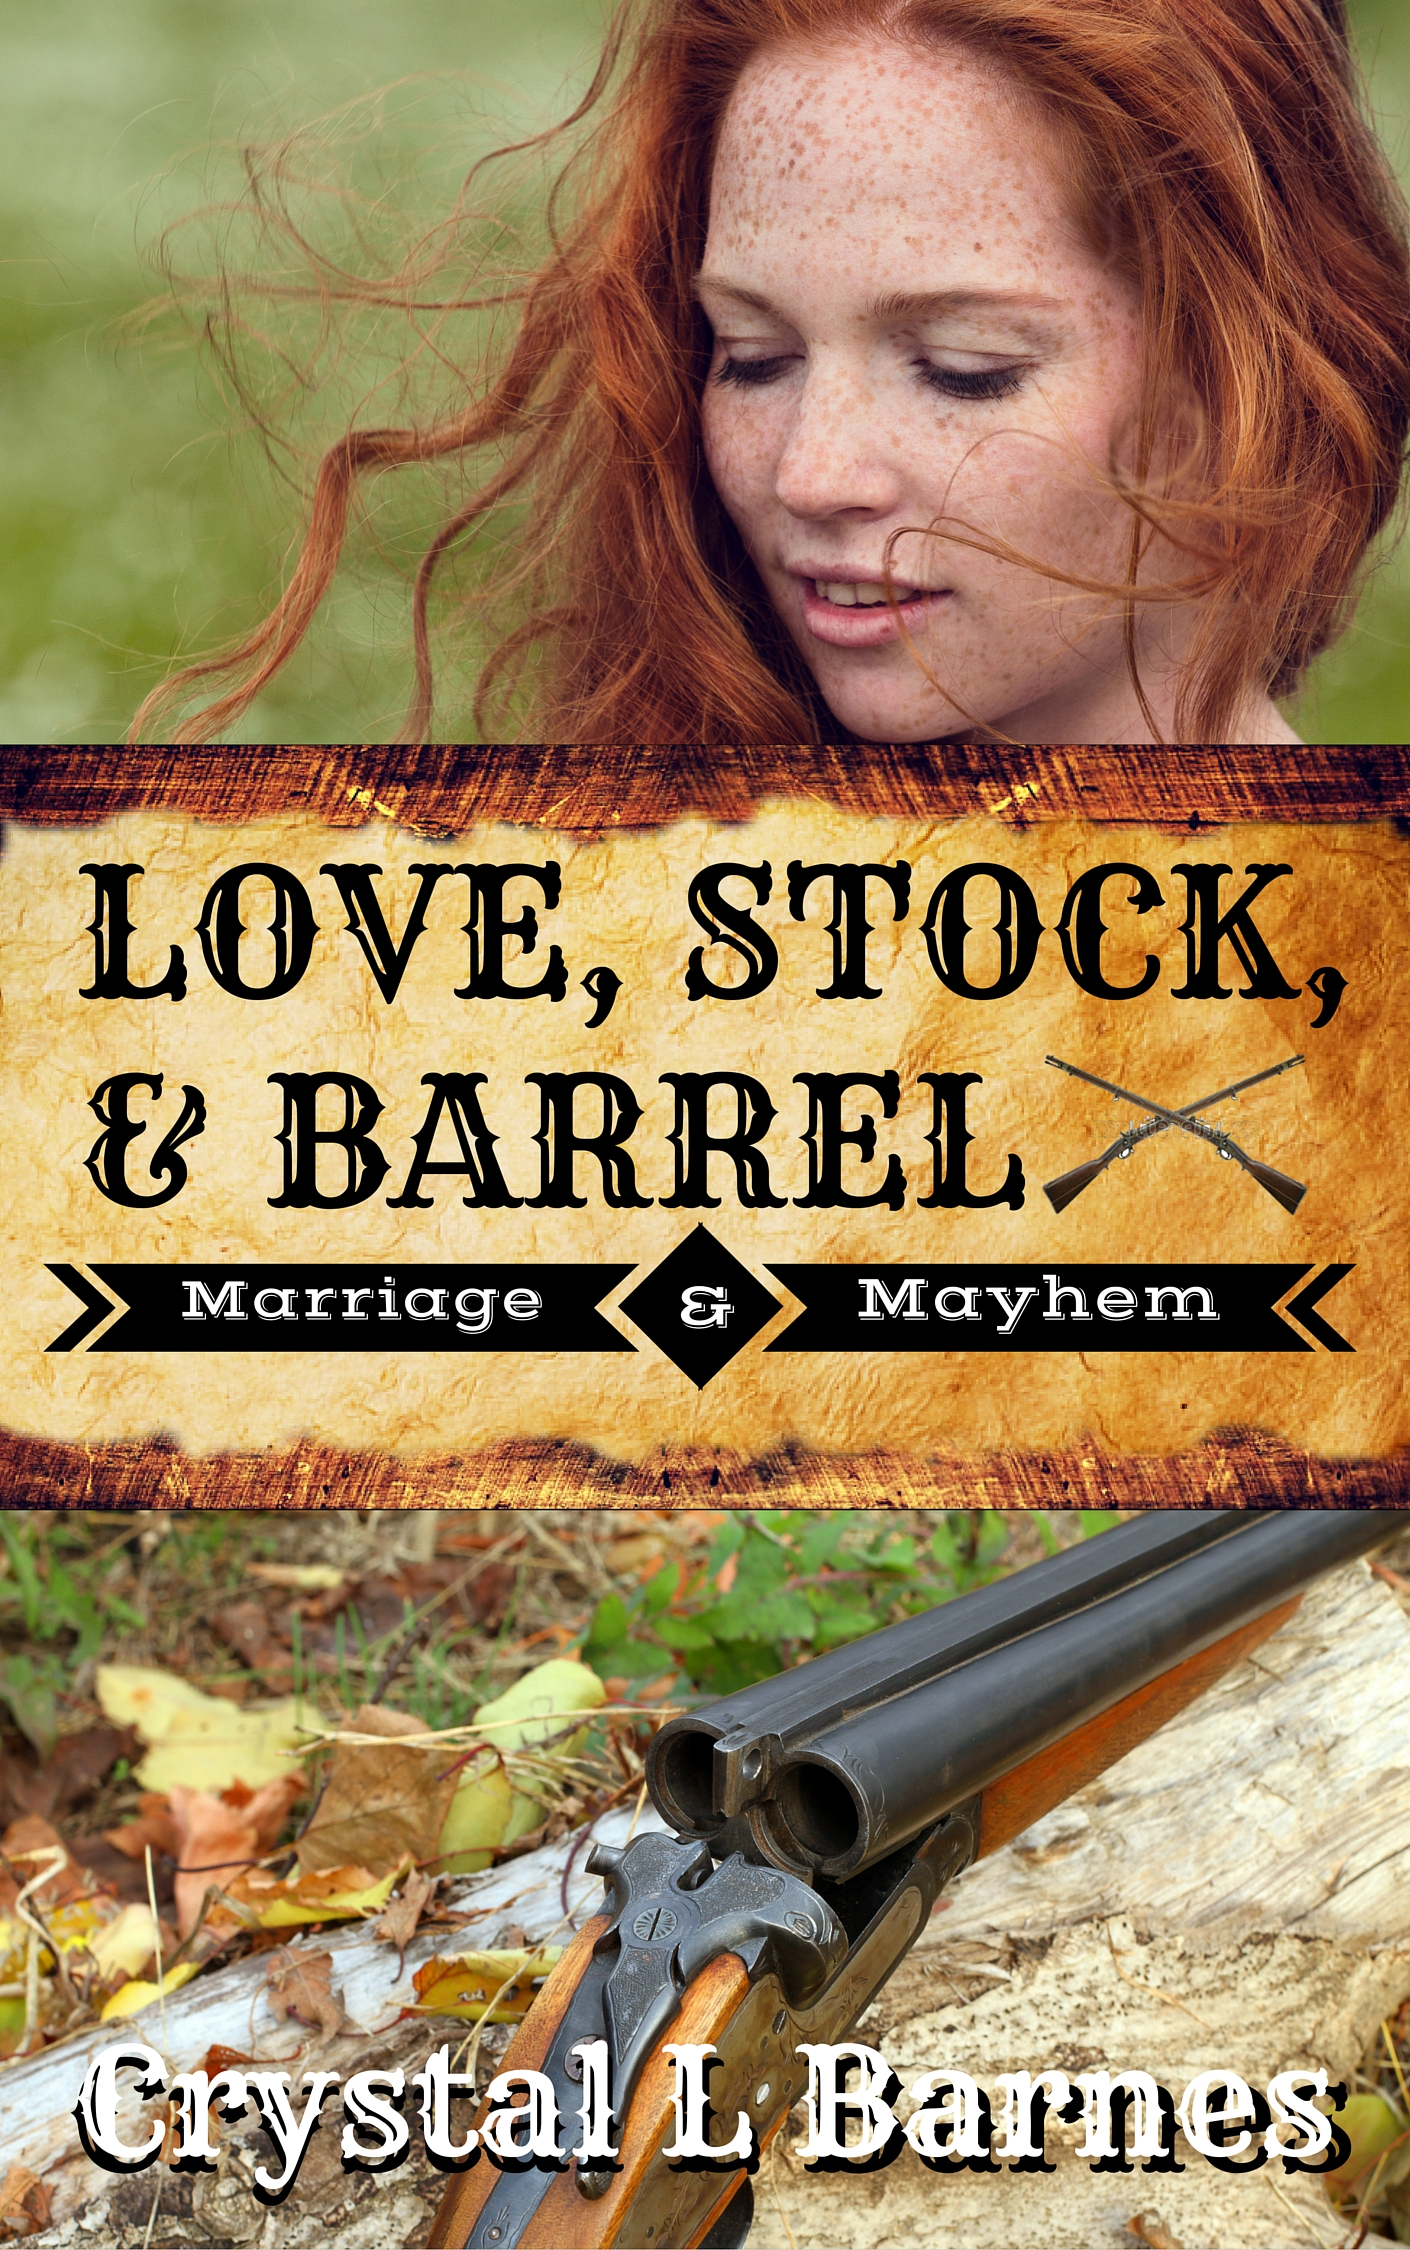 Love, Stock, and Barrel